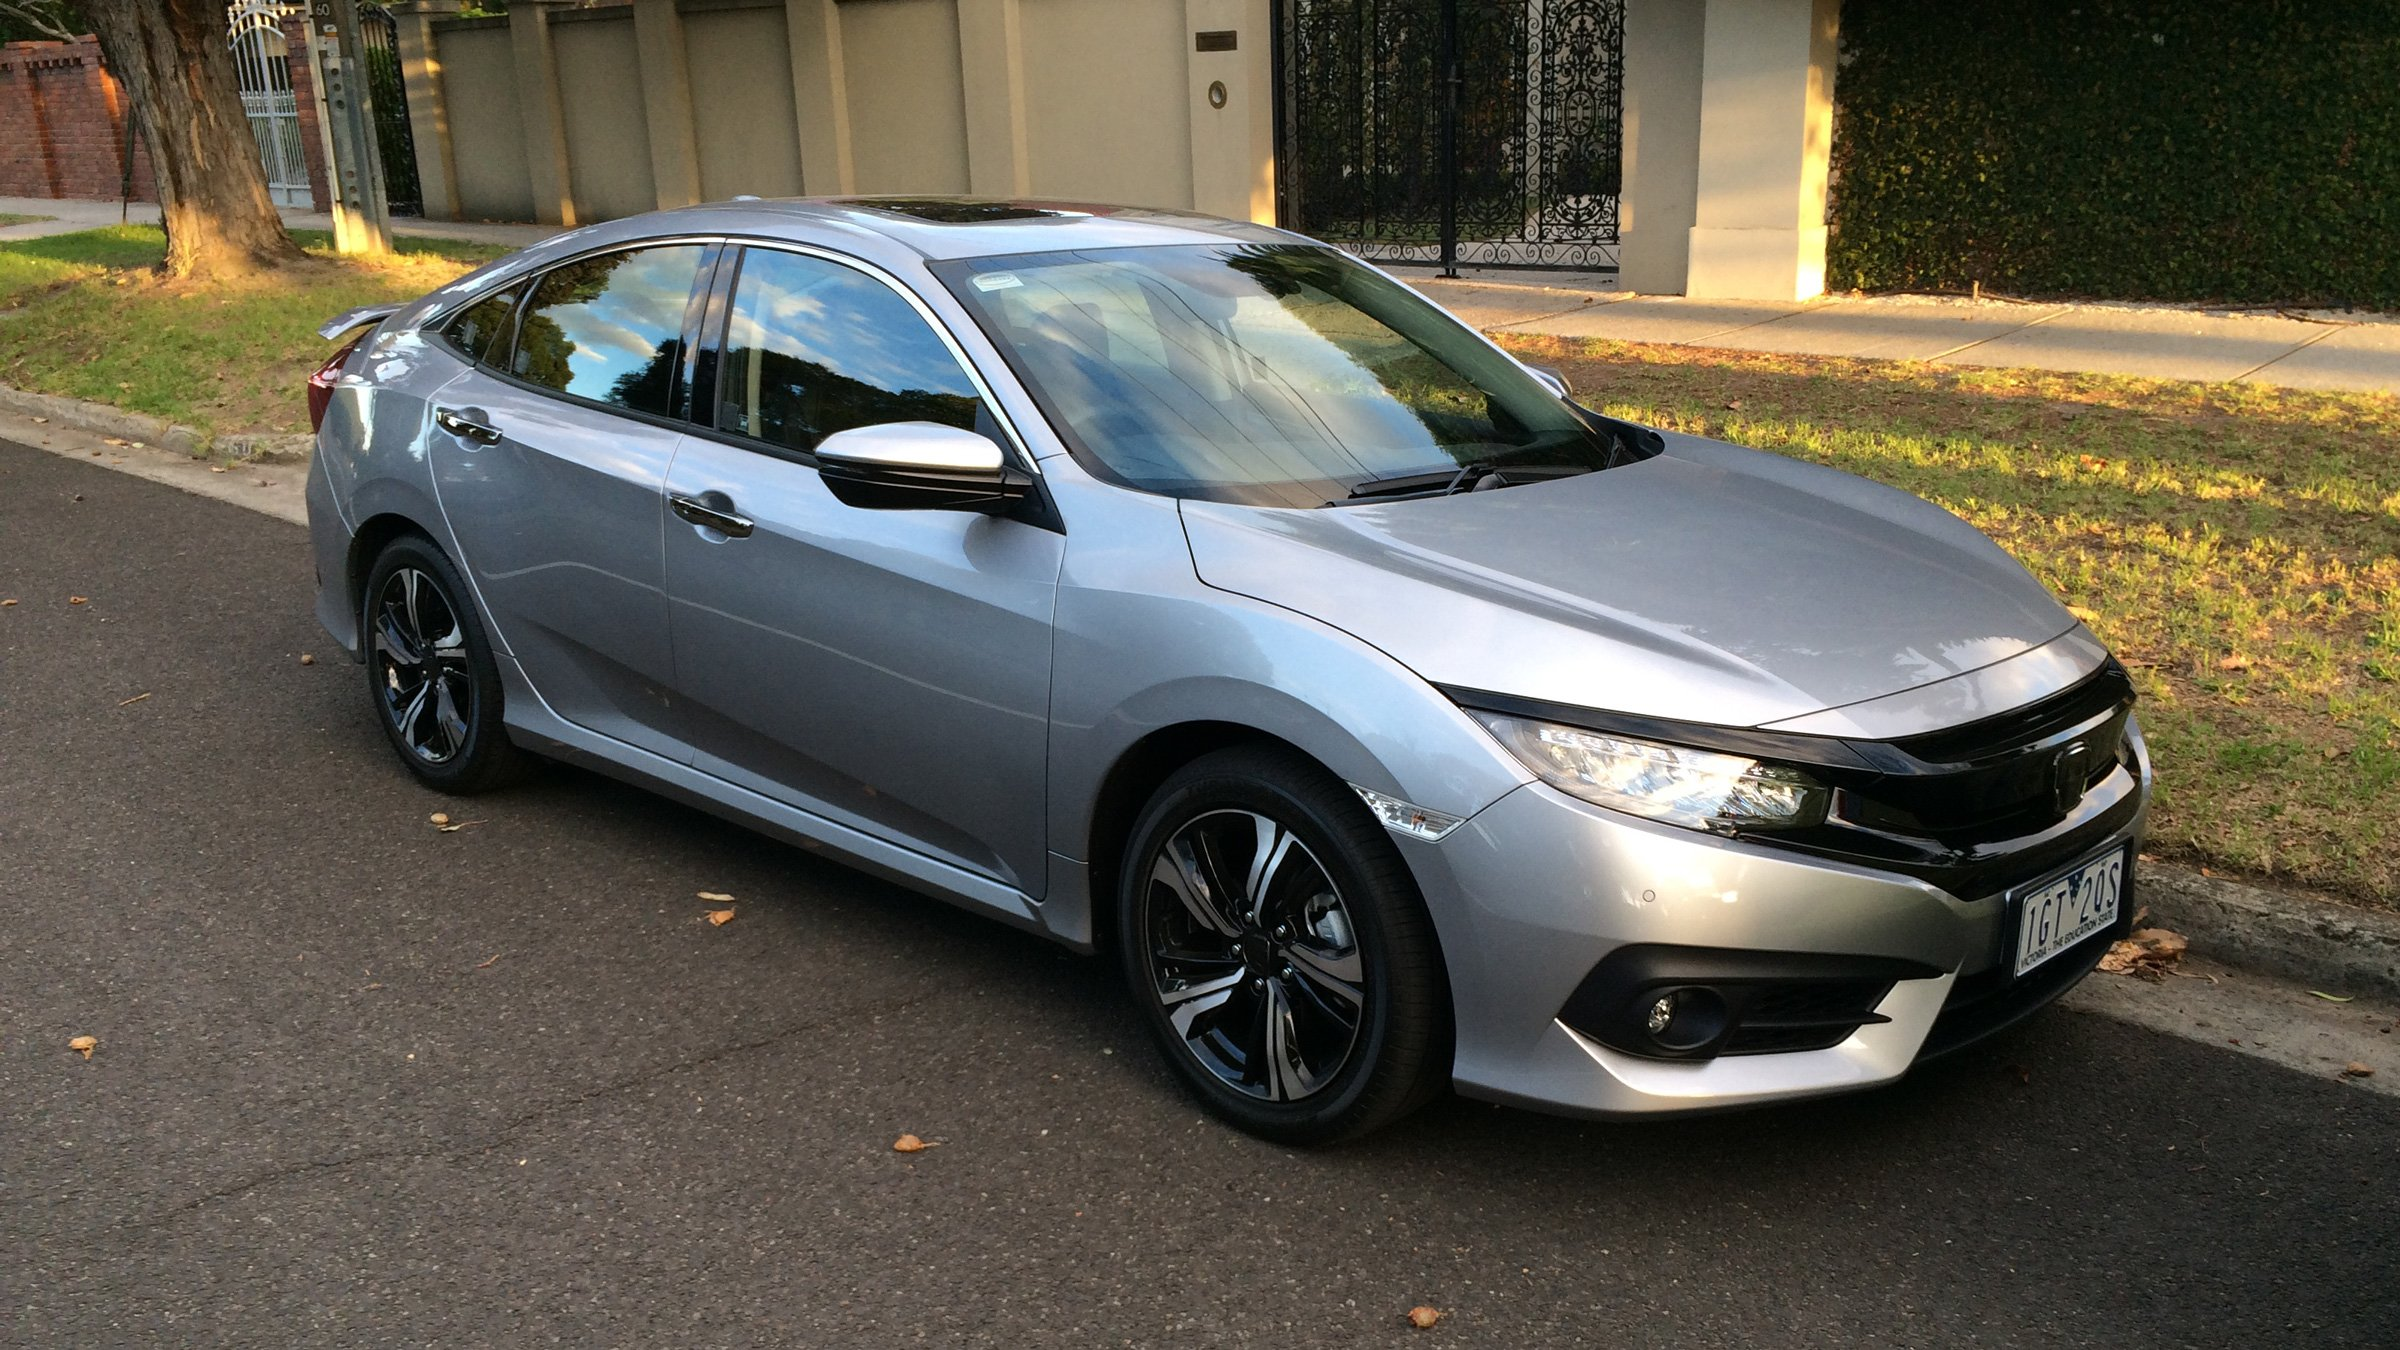 Honda Civic Sports Car Price